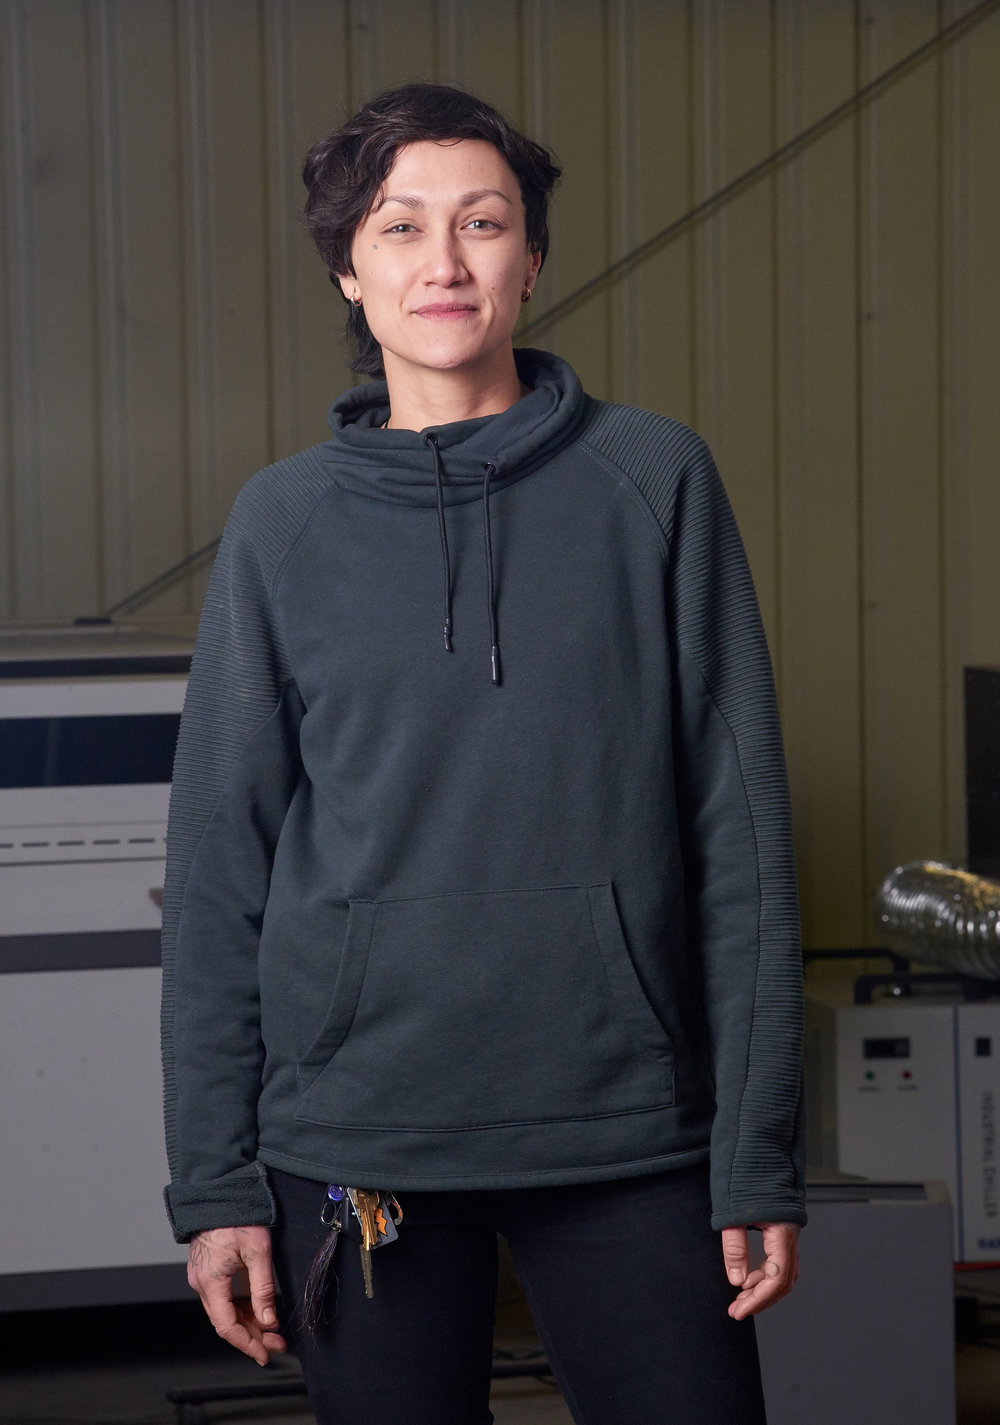 Natalie standing in front of laser cutting machine in Houston Texas